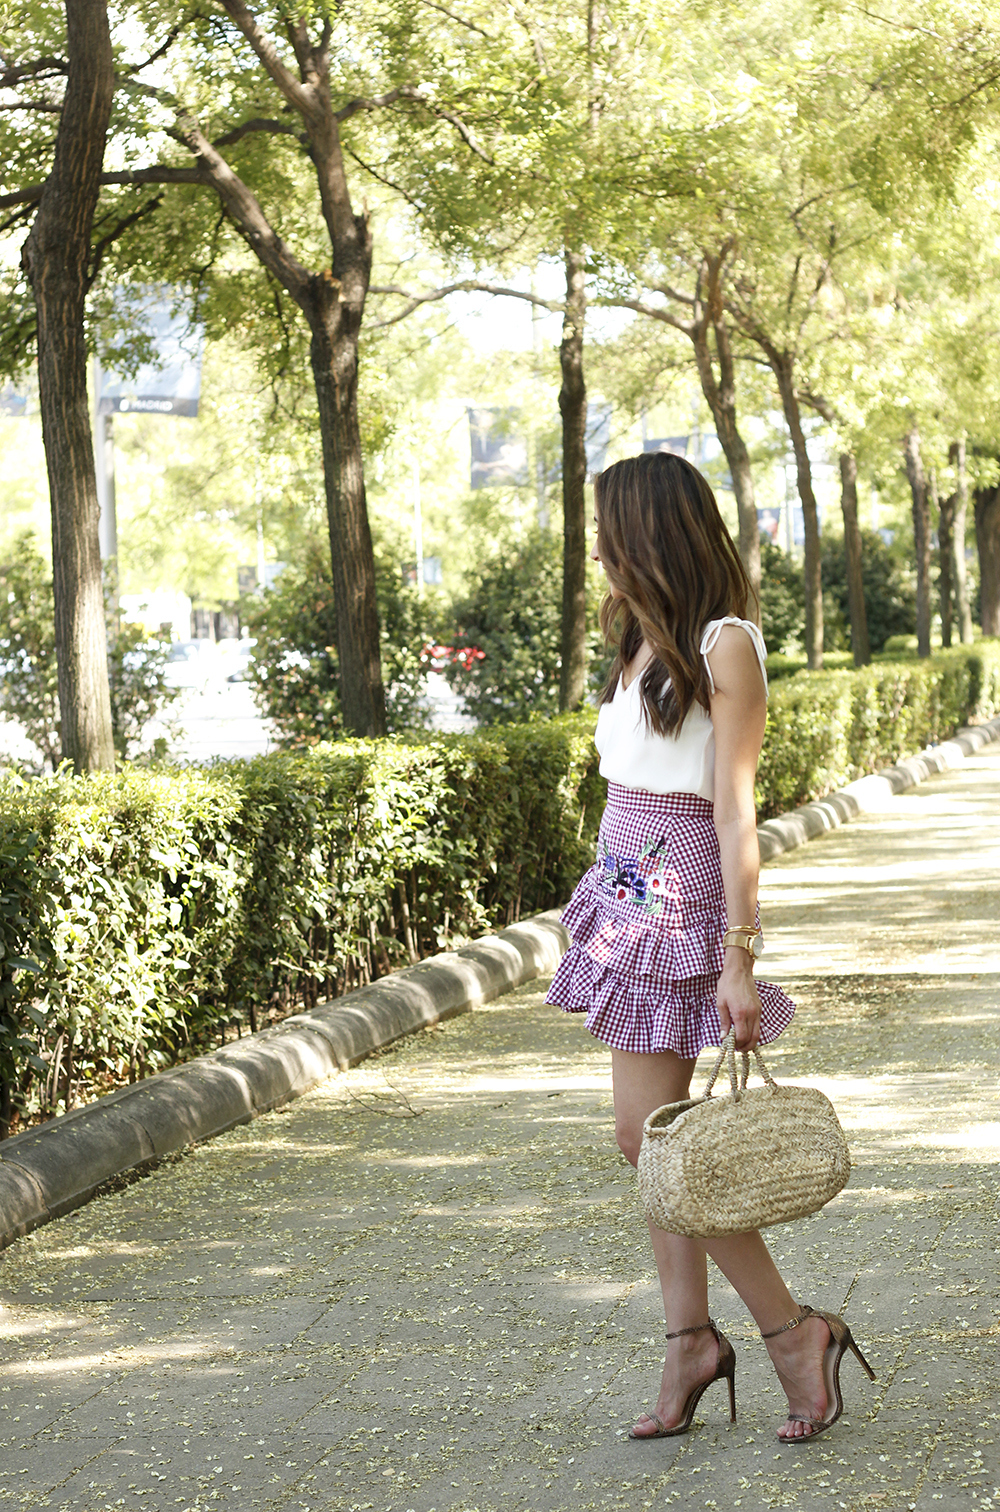 Vichy skirt with embroidered flowers rafia bag heels summer outfit style02